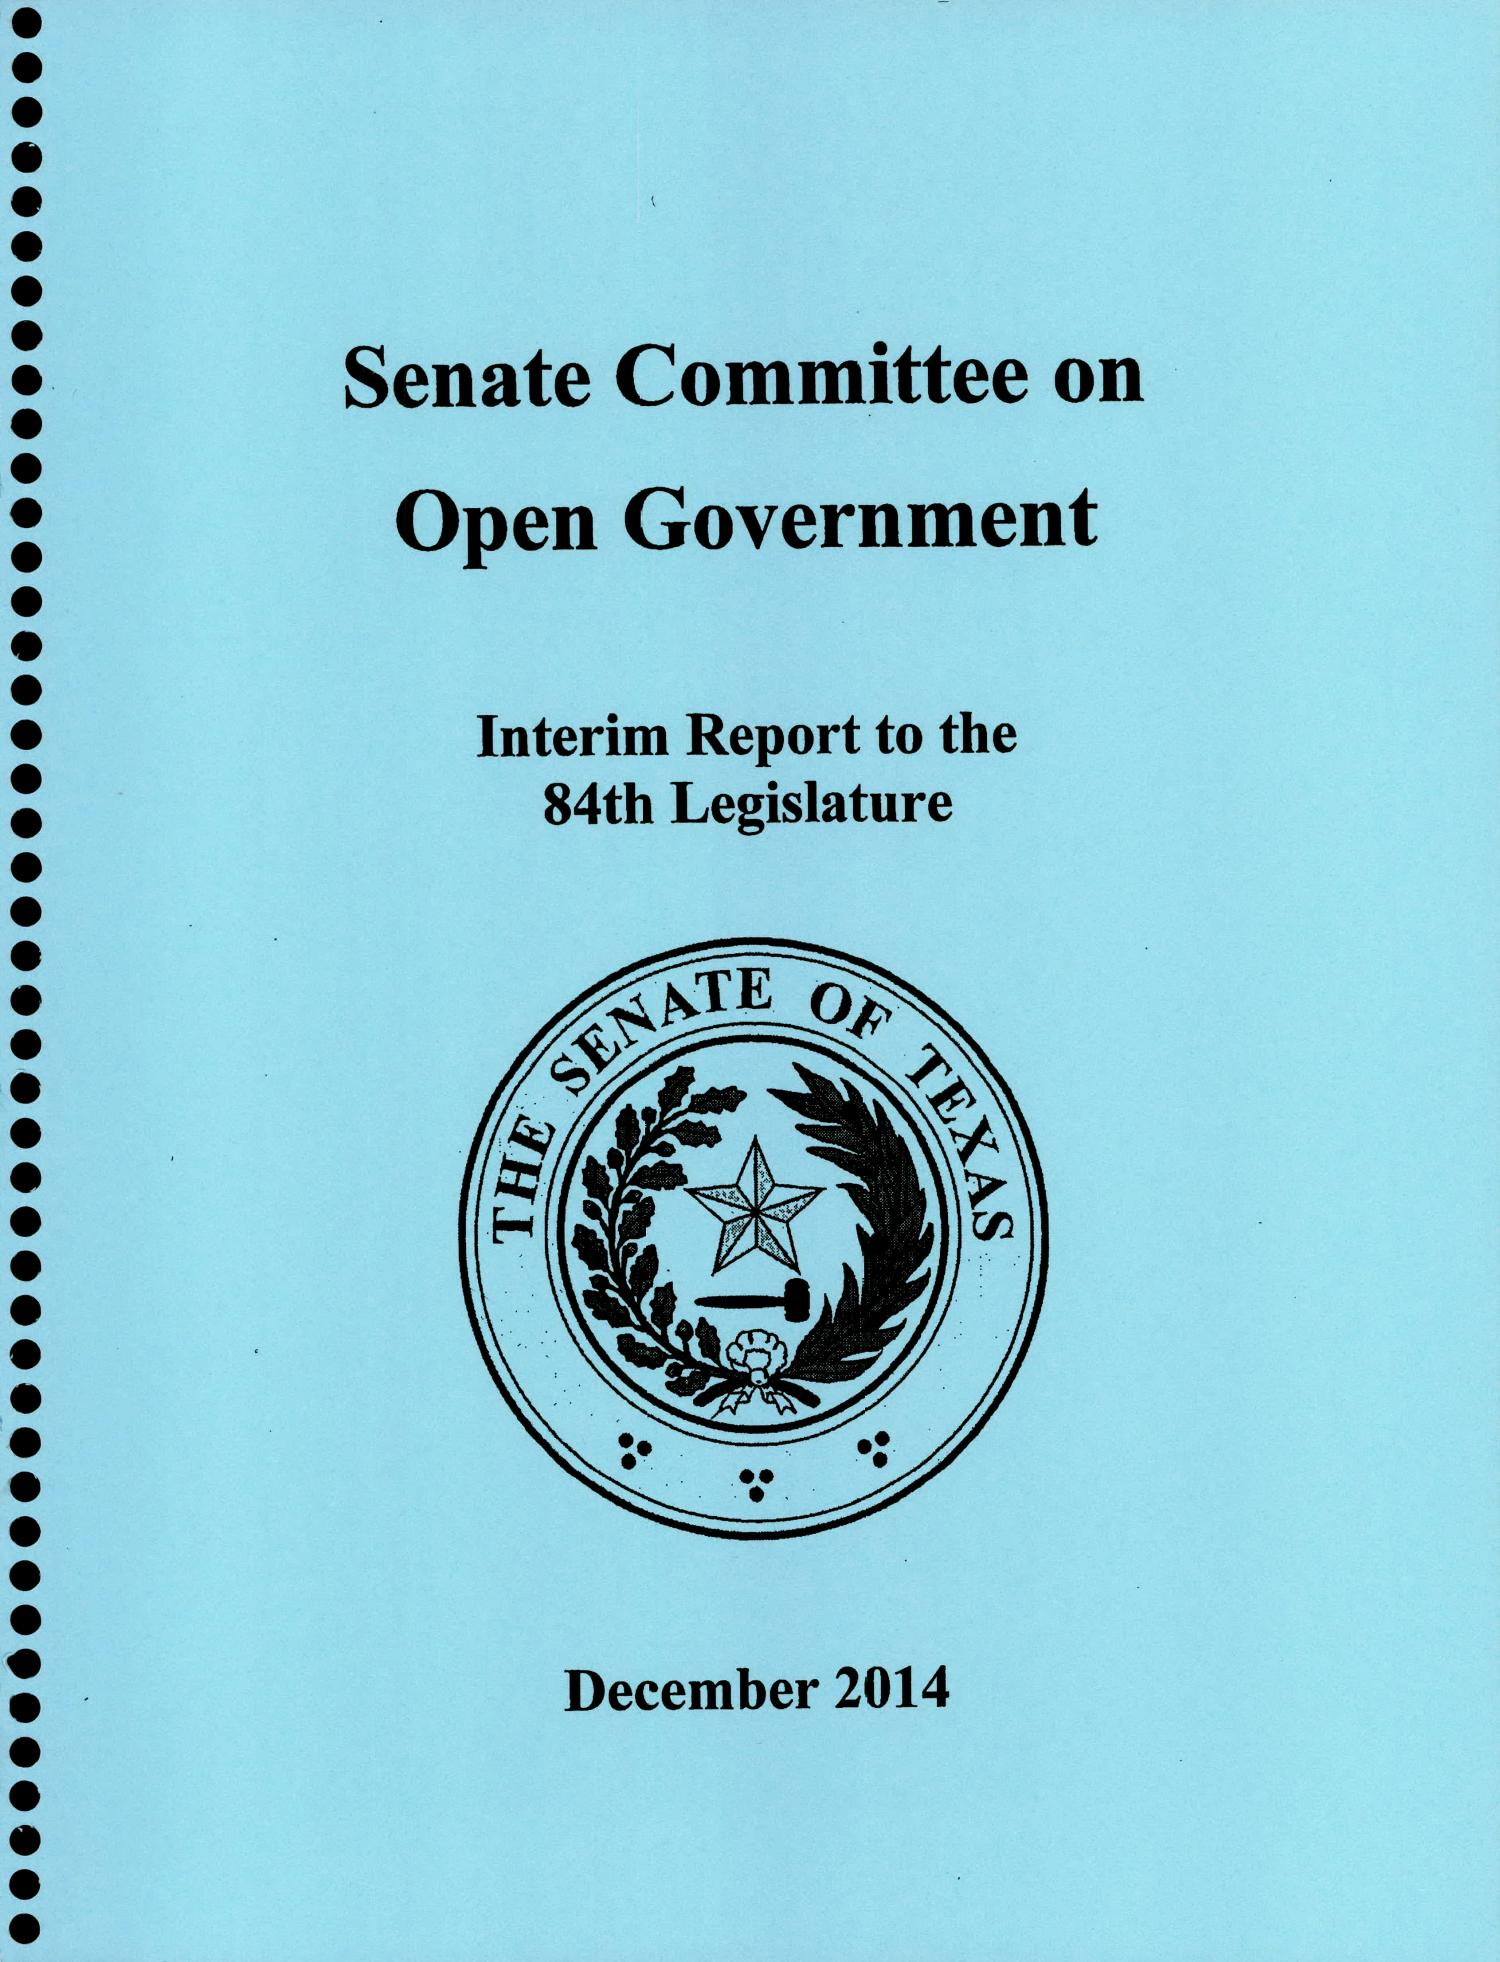 Interim Report to the 84th Texas Legislature: Senate Committee on Open Government                                                                                                      Front Cover